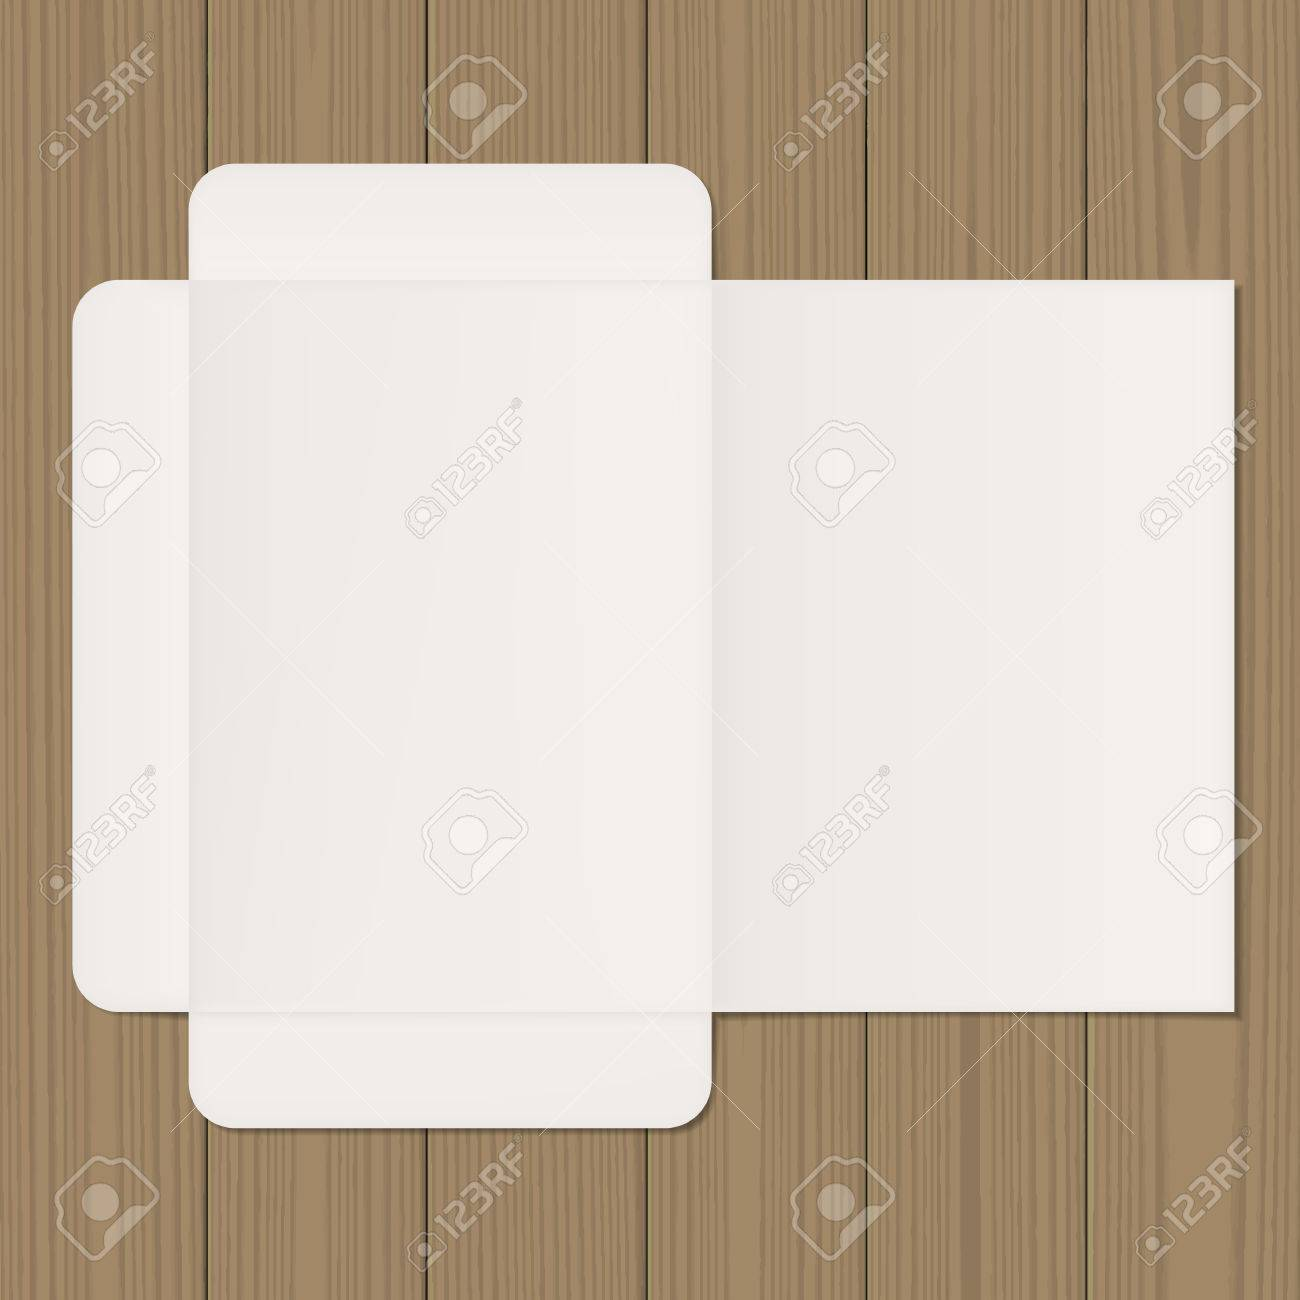 image relating to Printable Light Switch Cover Template identify Open up folder mock up. Blank template upon picket heritage. World-wide-web,..